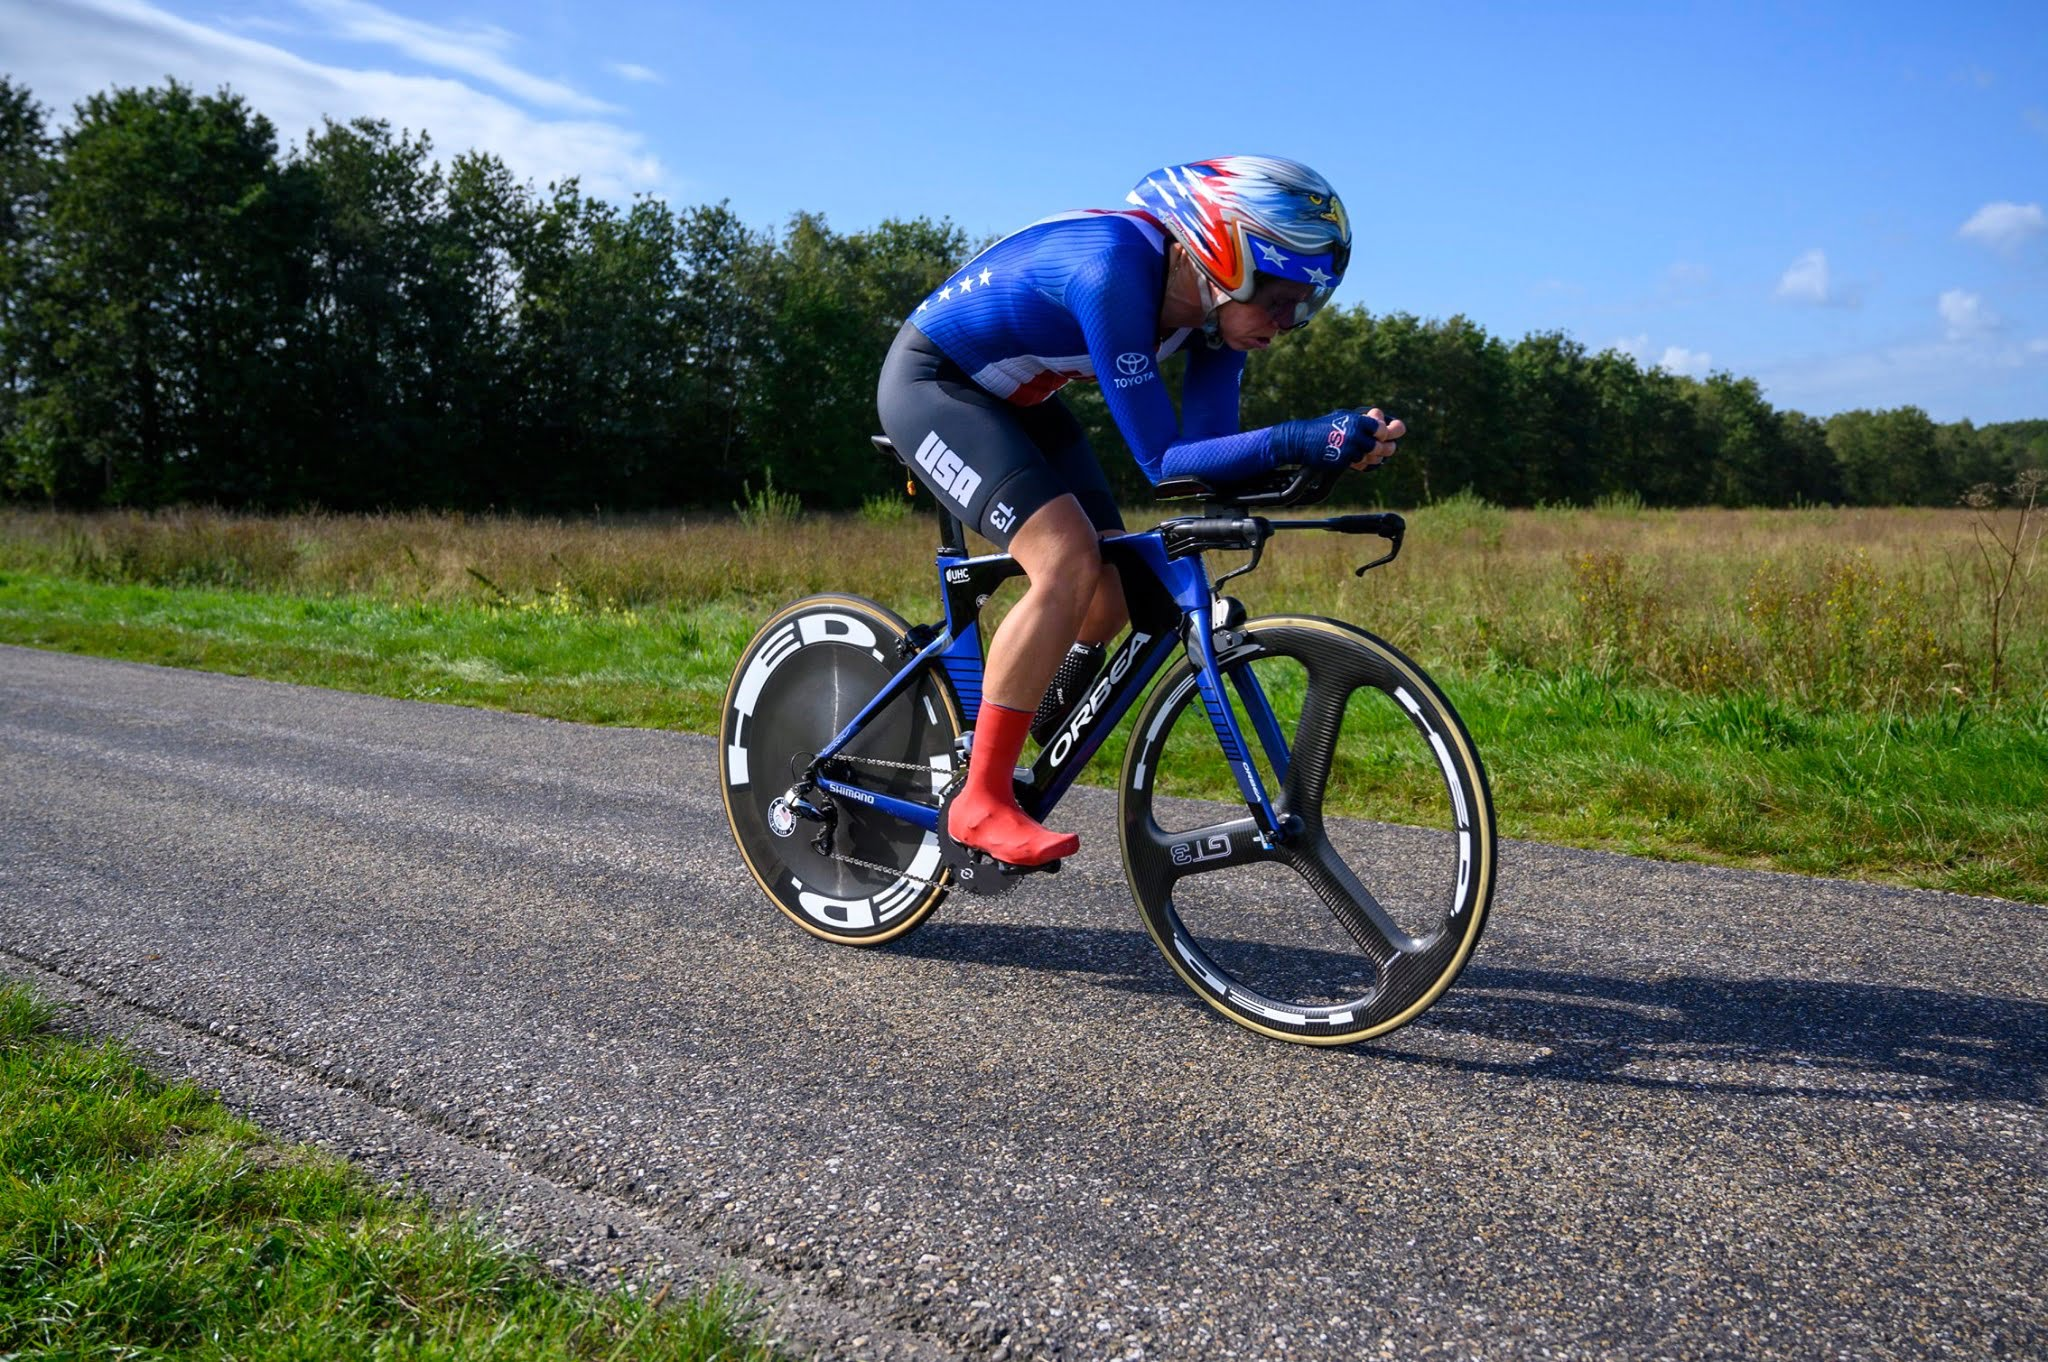 Shawn Morelli partners with Verve Cycling